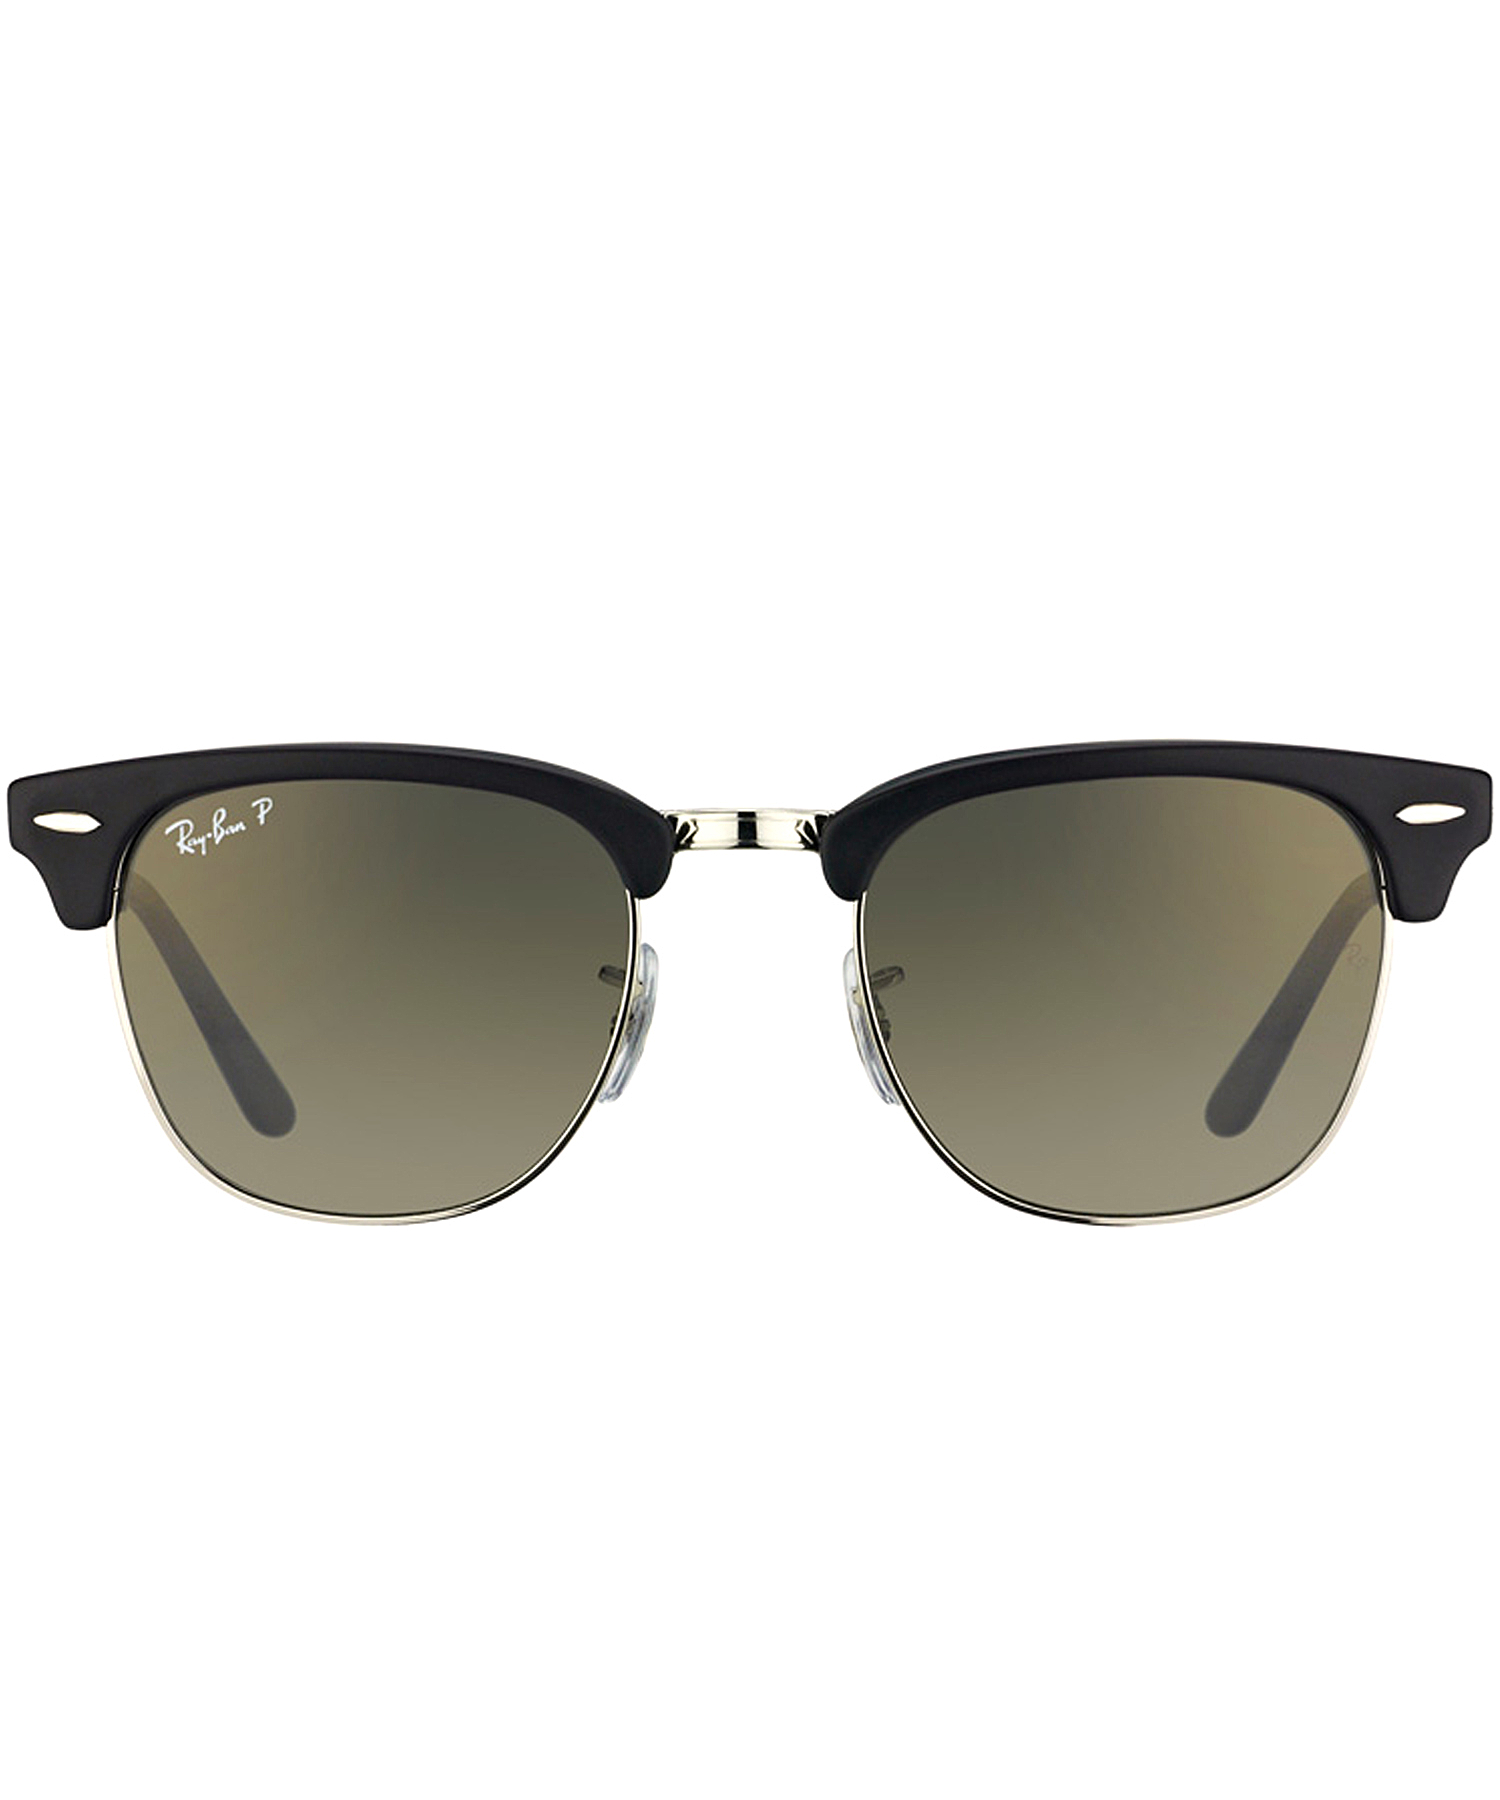 ray ban foldable clubmaster plastic sunglasses in black lyst. Black Bedroom Furniture Sets. Home Design Ideas